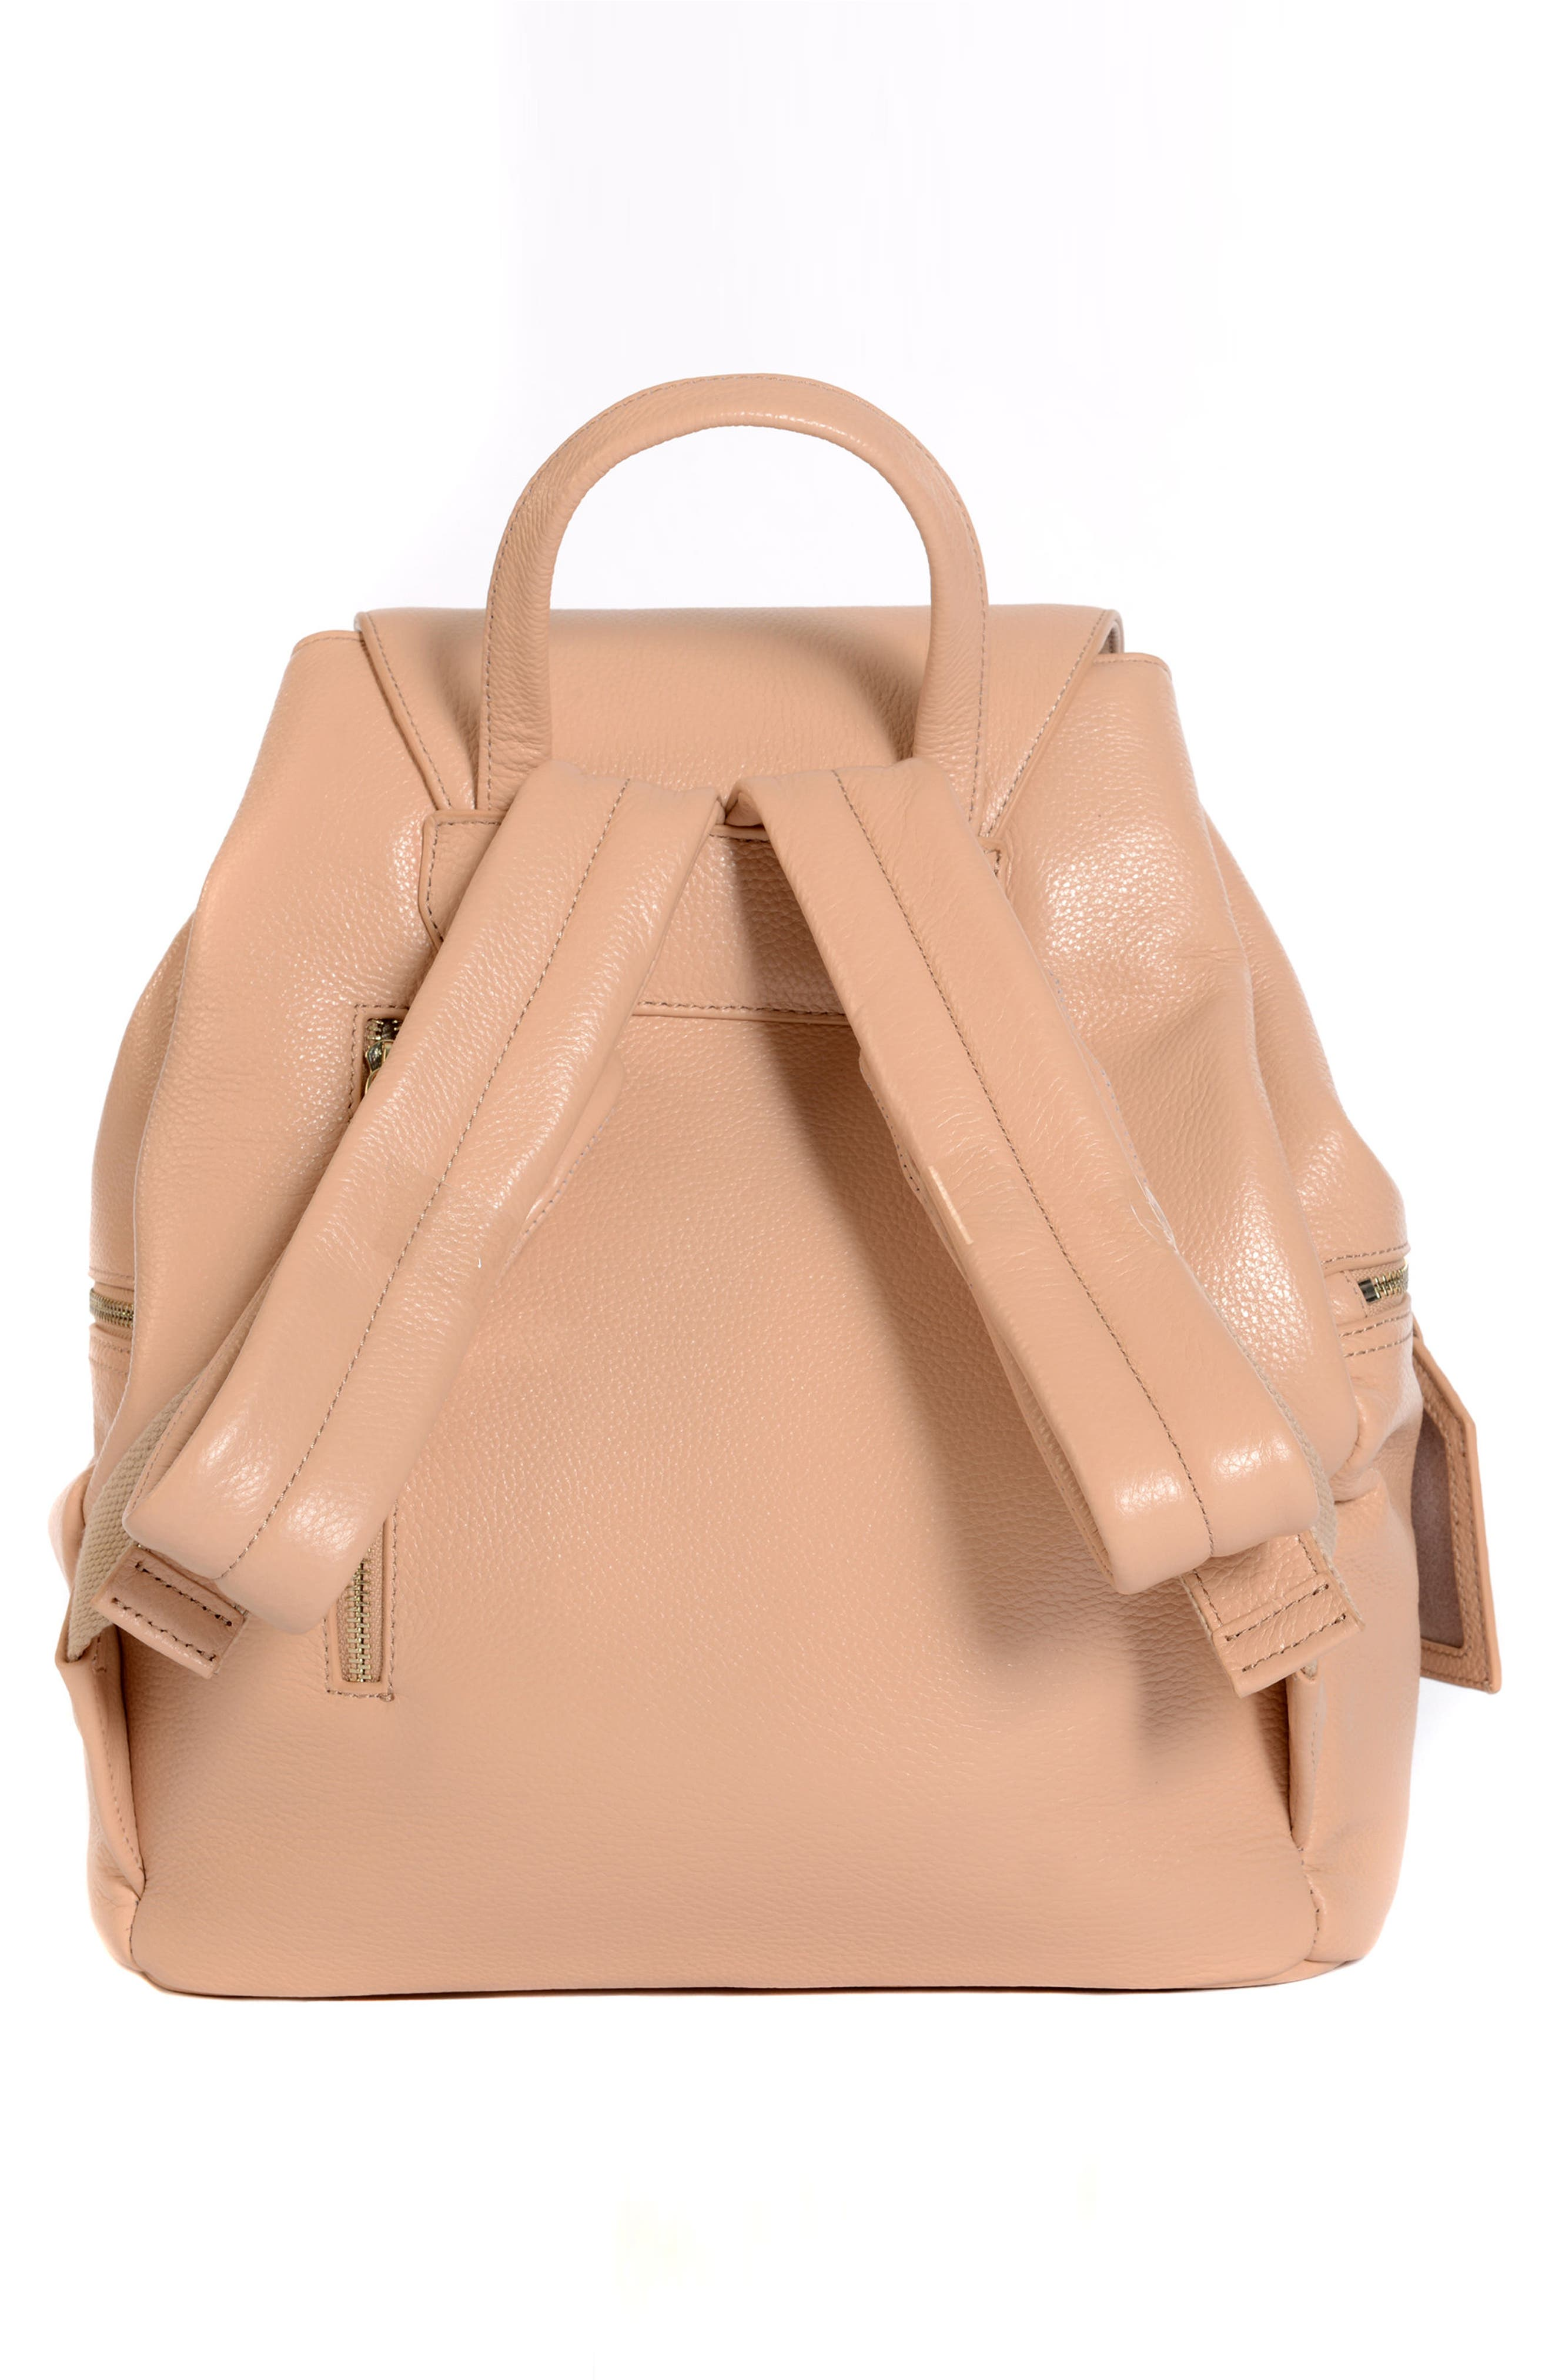 Thor Leather Backpack,                             Alternate thumbnail 2, color,                             Nude With Gold Hardware